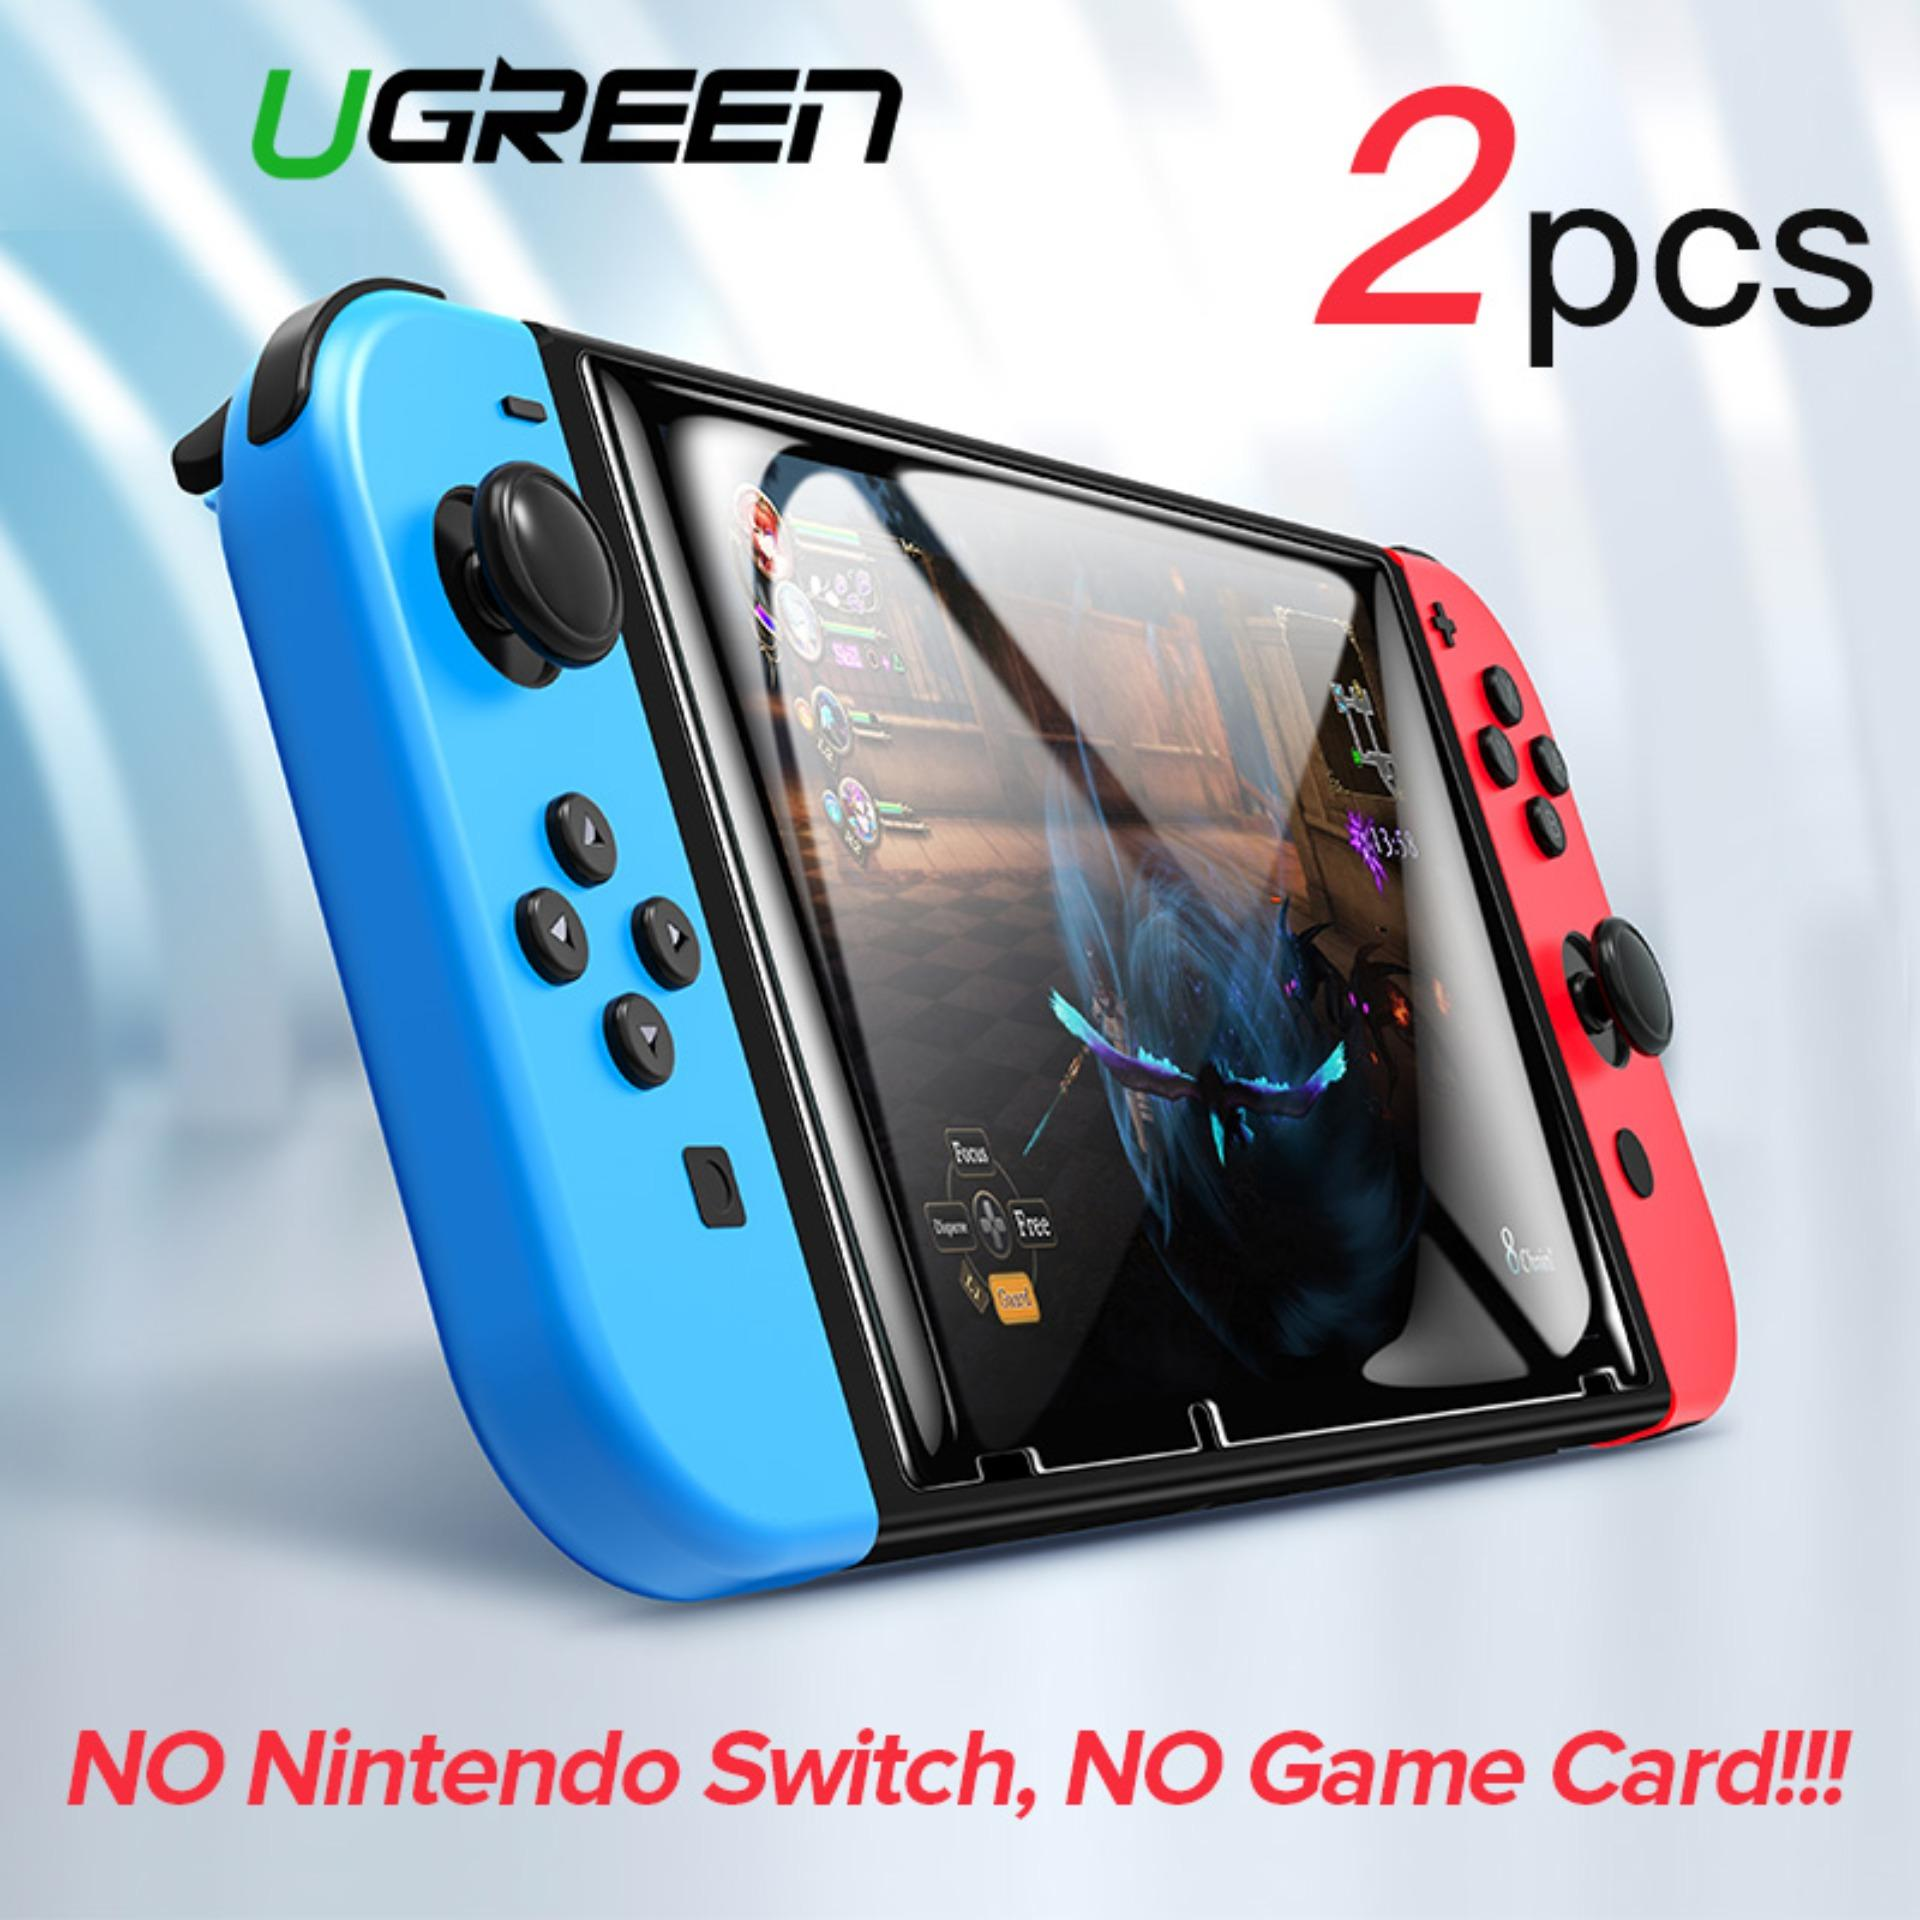 UGRREN 2PCS Screen Protector for Nintendo Switch Premium Tempered Glass  Screen Protector Film for Nintendo Switch 9H Hardness with Install Tools